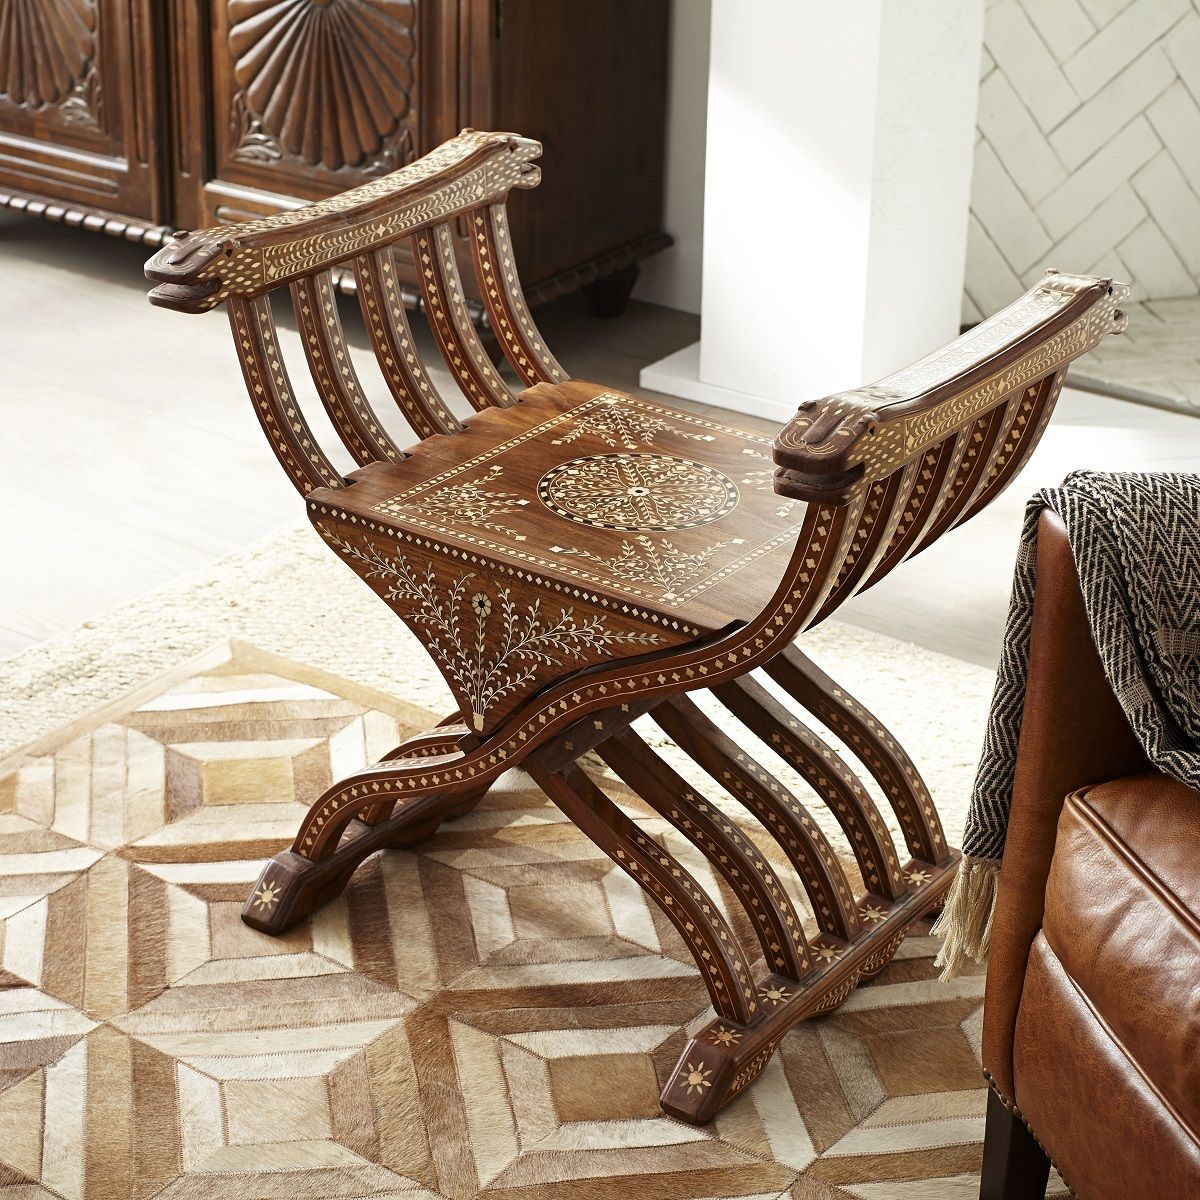 Persian Folding Chair Chair Folding Chair Furniture